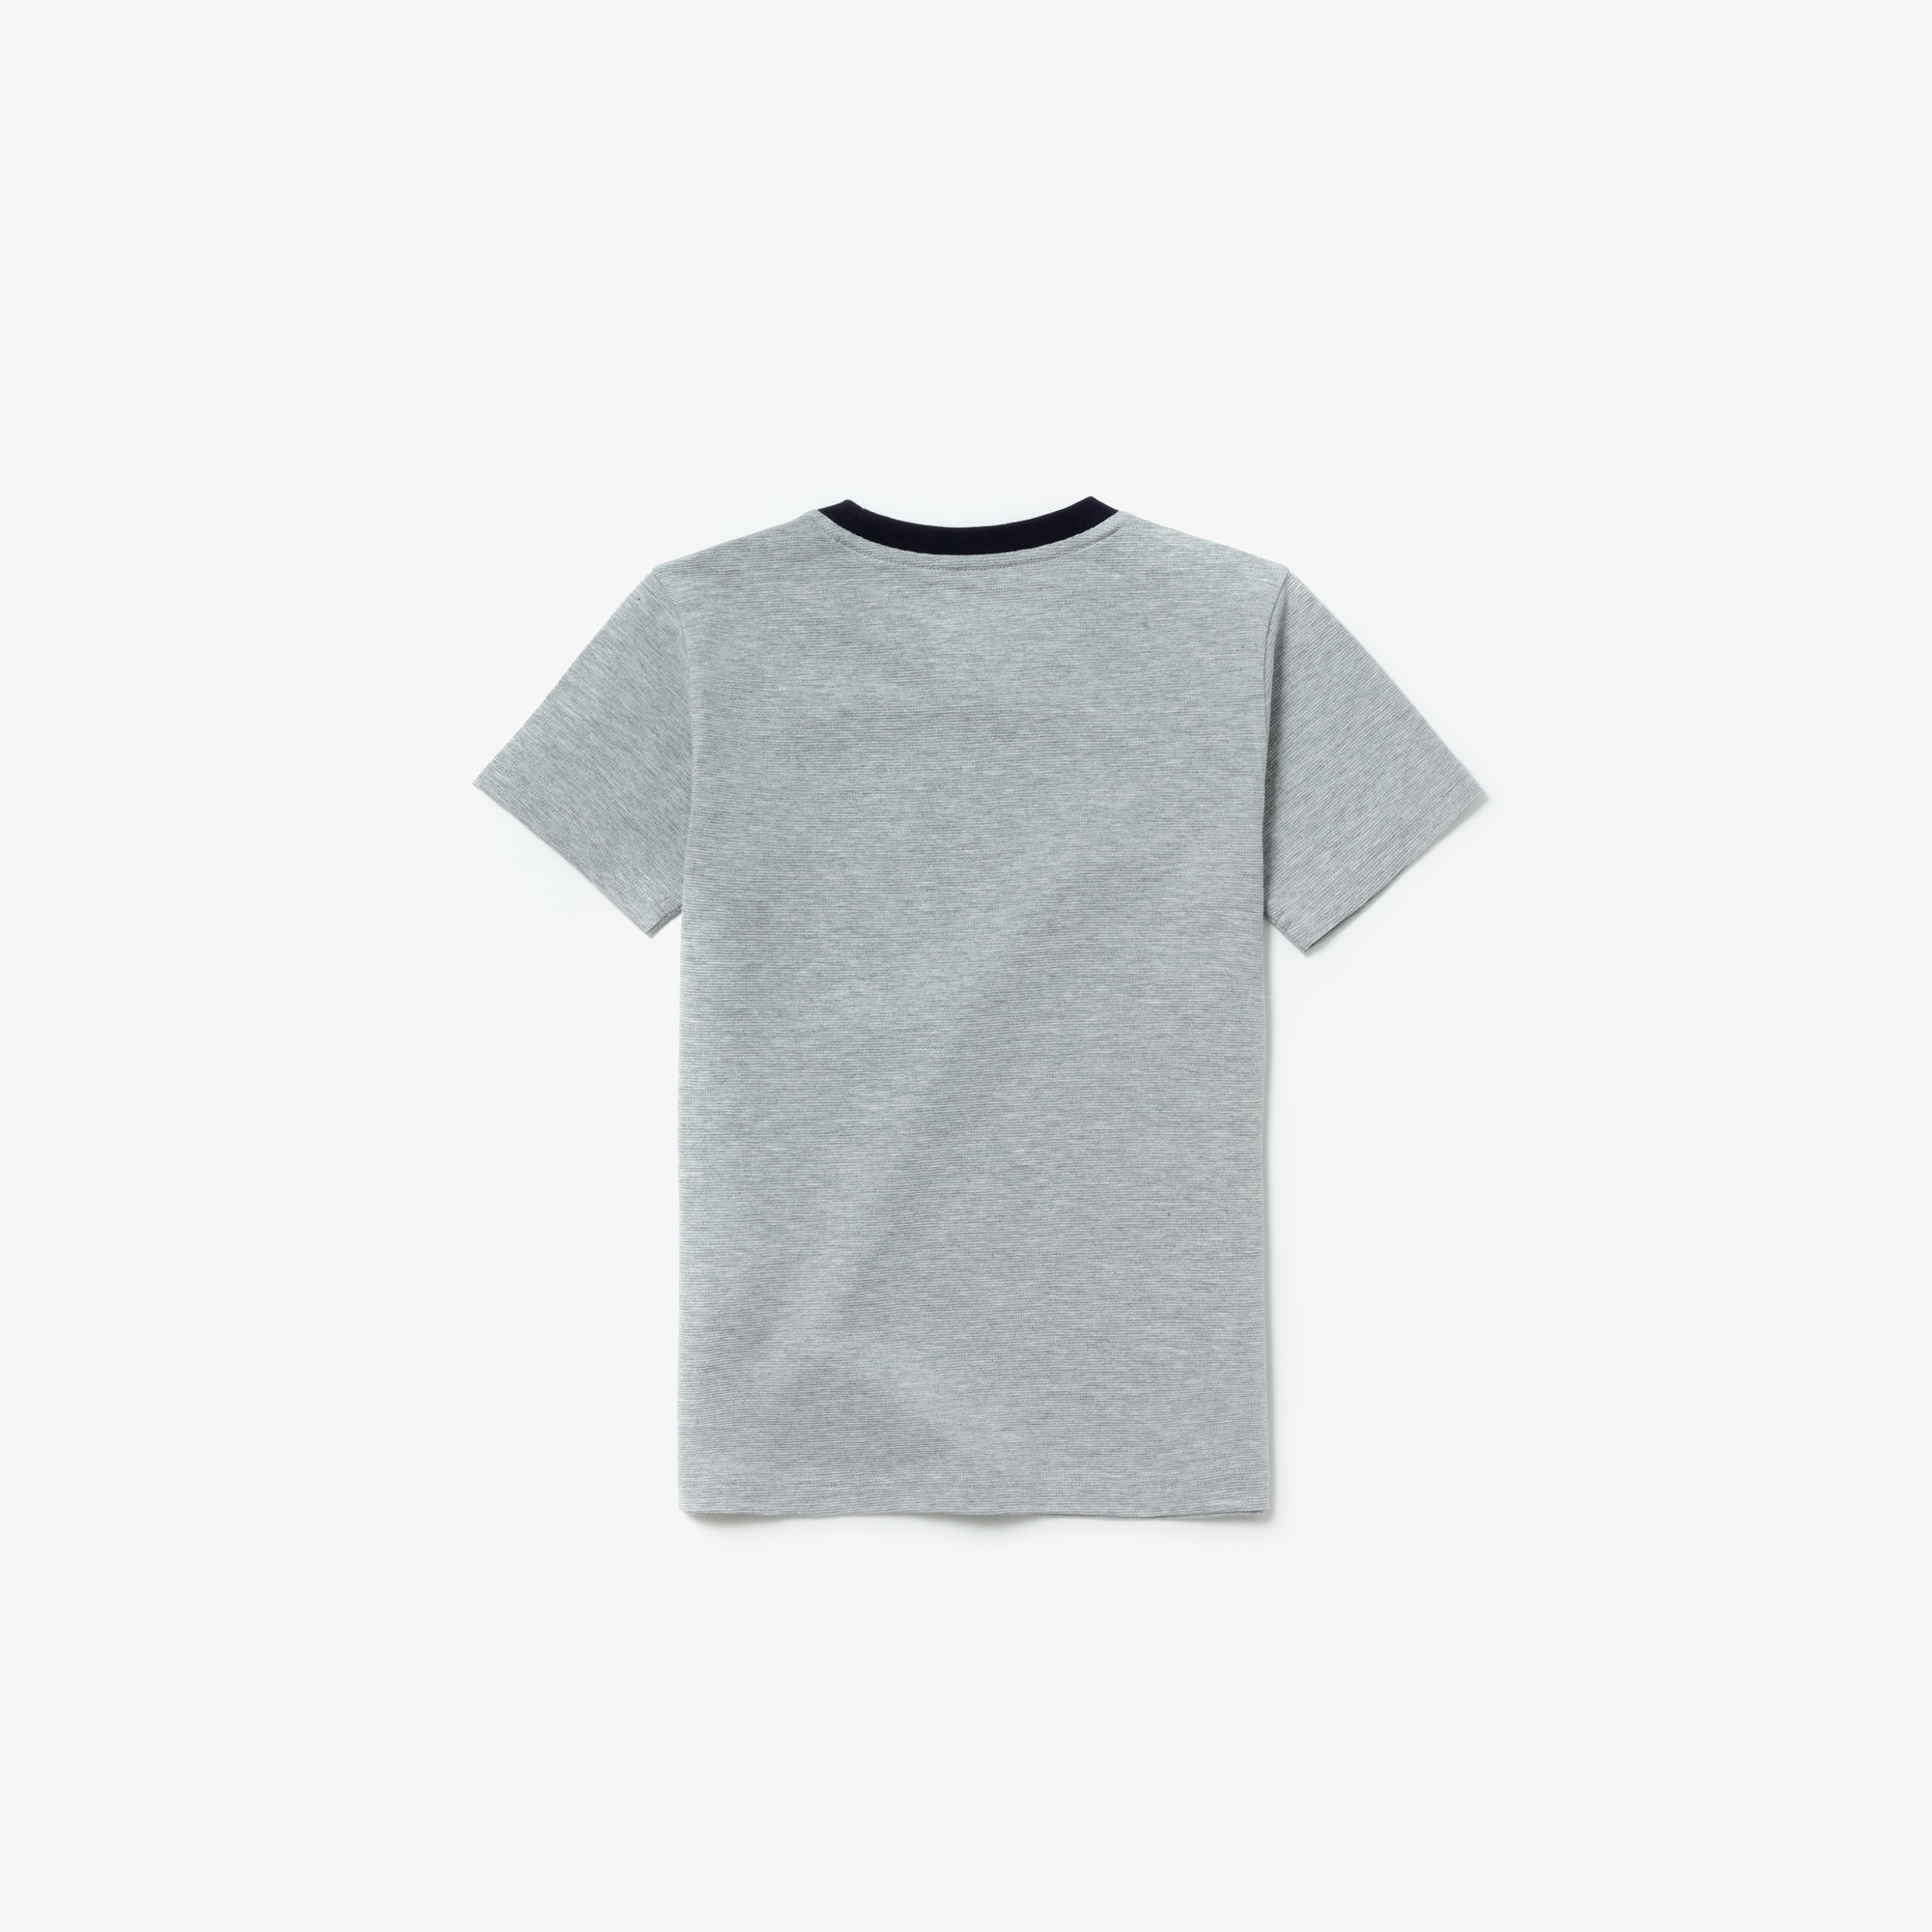 Boys' SPORT Cotton Tennis T-shirt